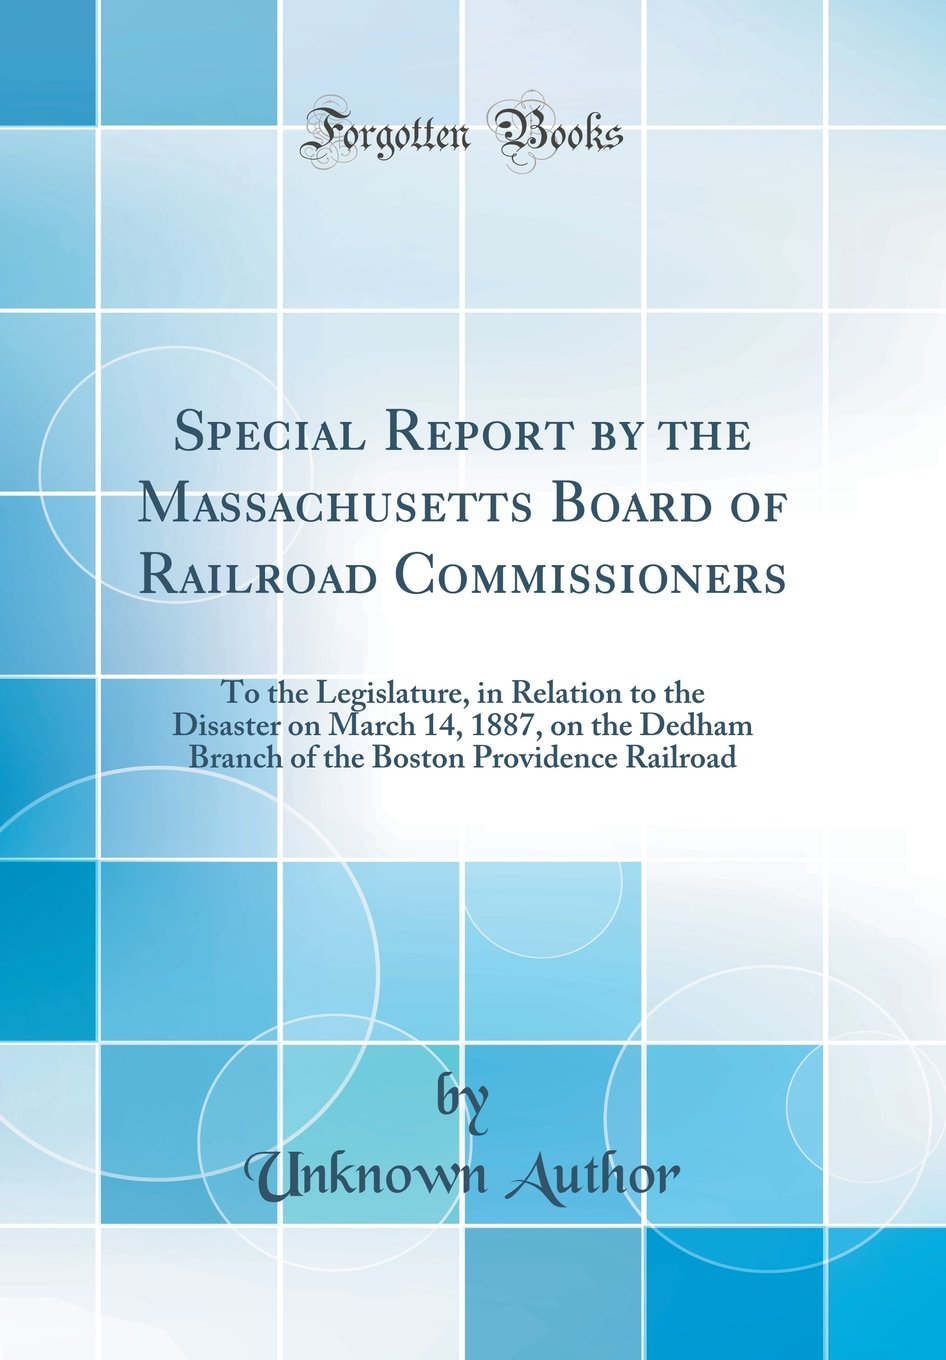 Special Report by the Massachusetts Board of Railroad Commissioners: To the Legislature, in Relation to the Disaster on March 14, 1887, on the Dedham Boston Providence Railroad (Classic Reprint) ebook